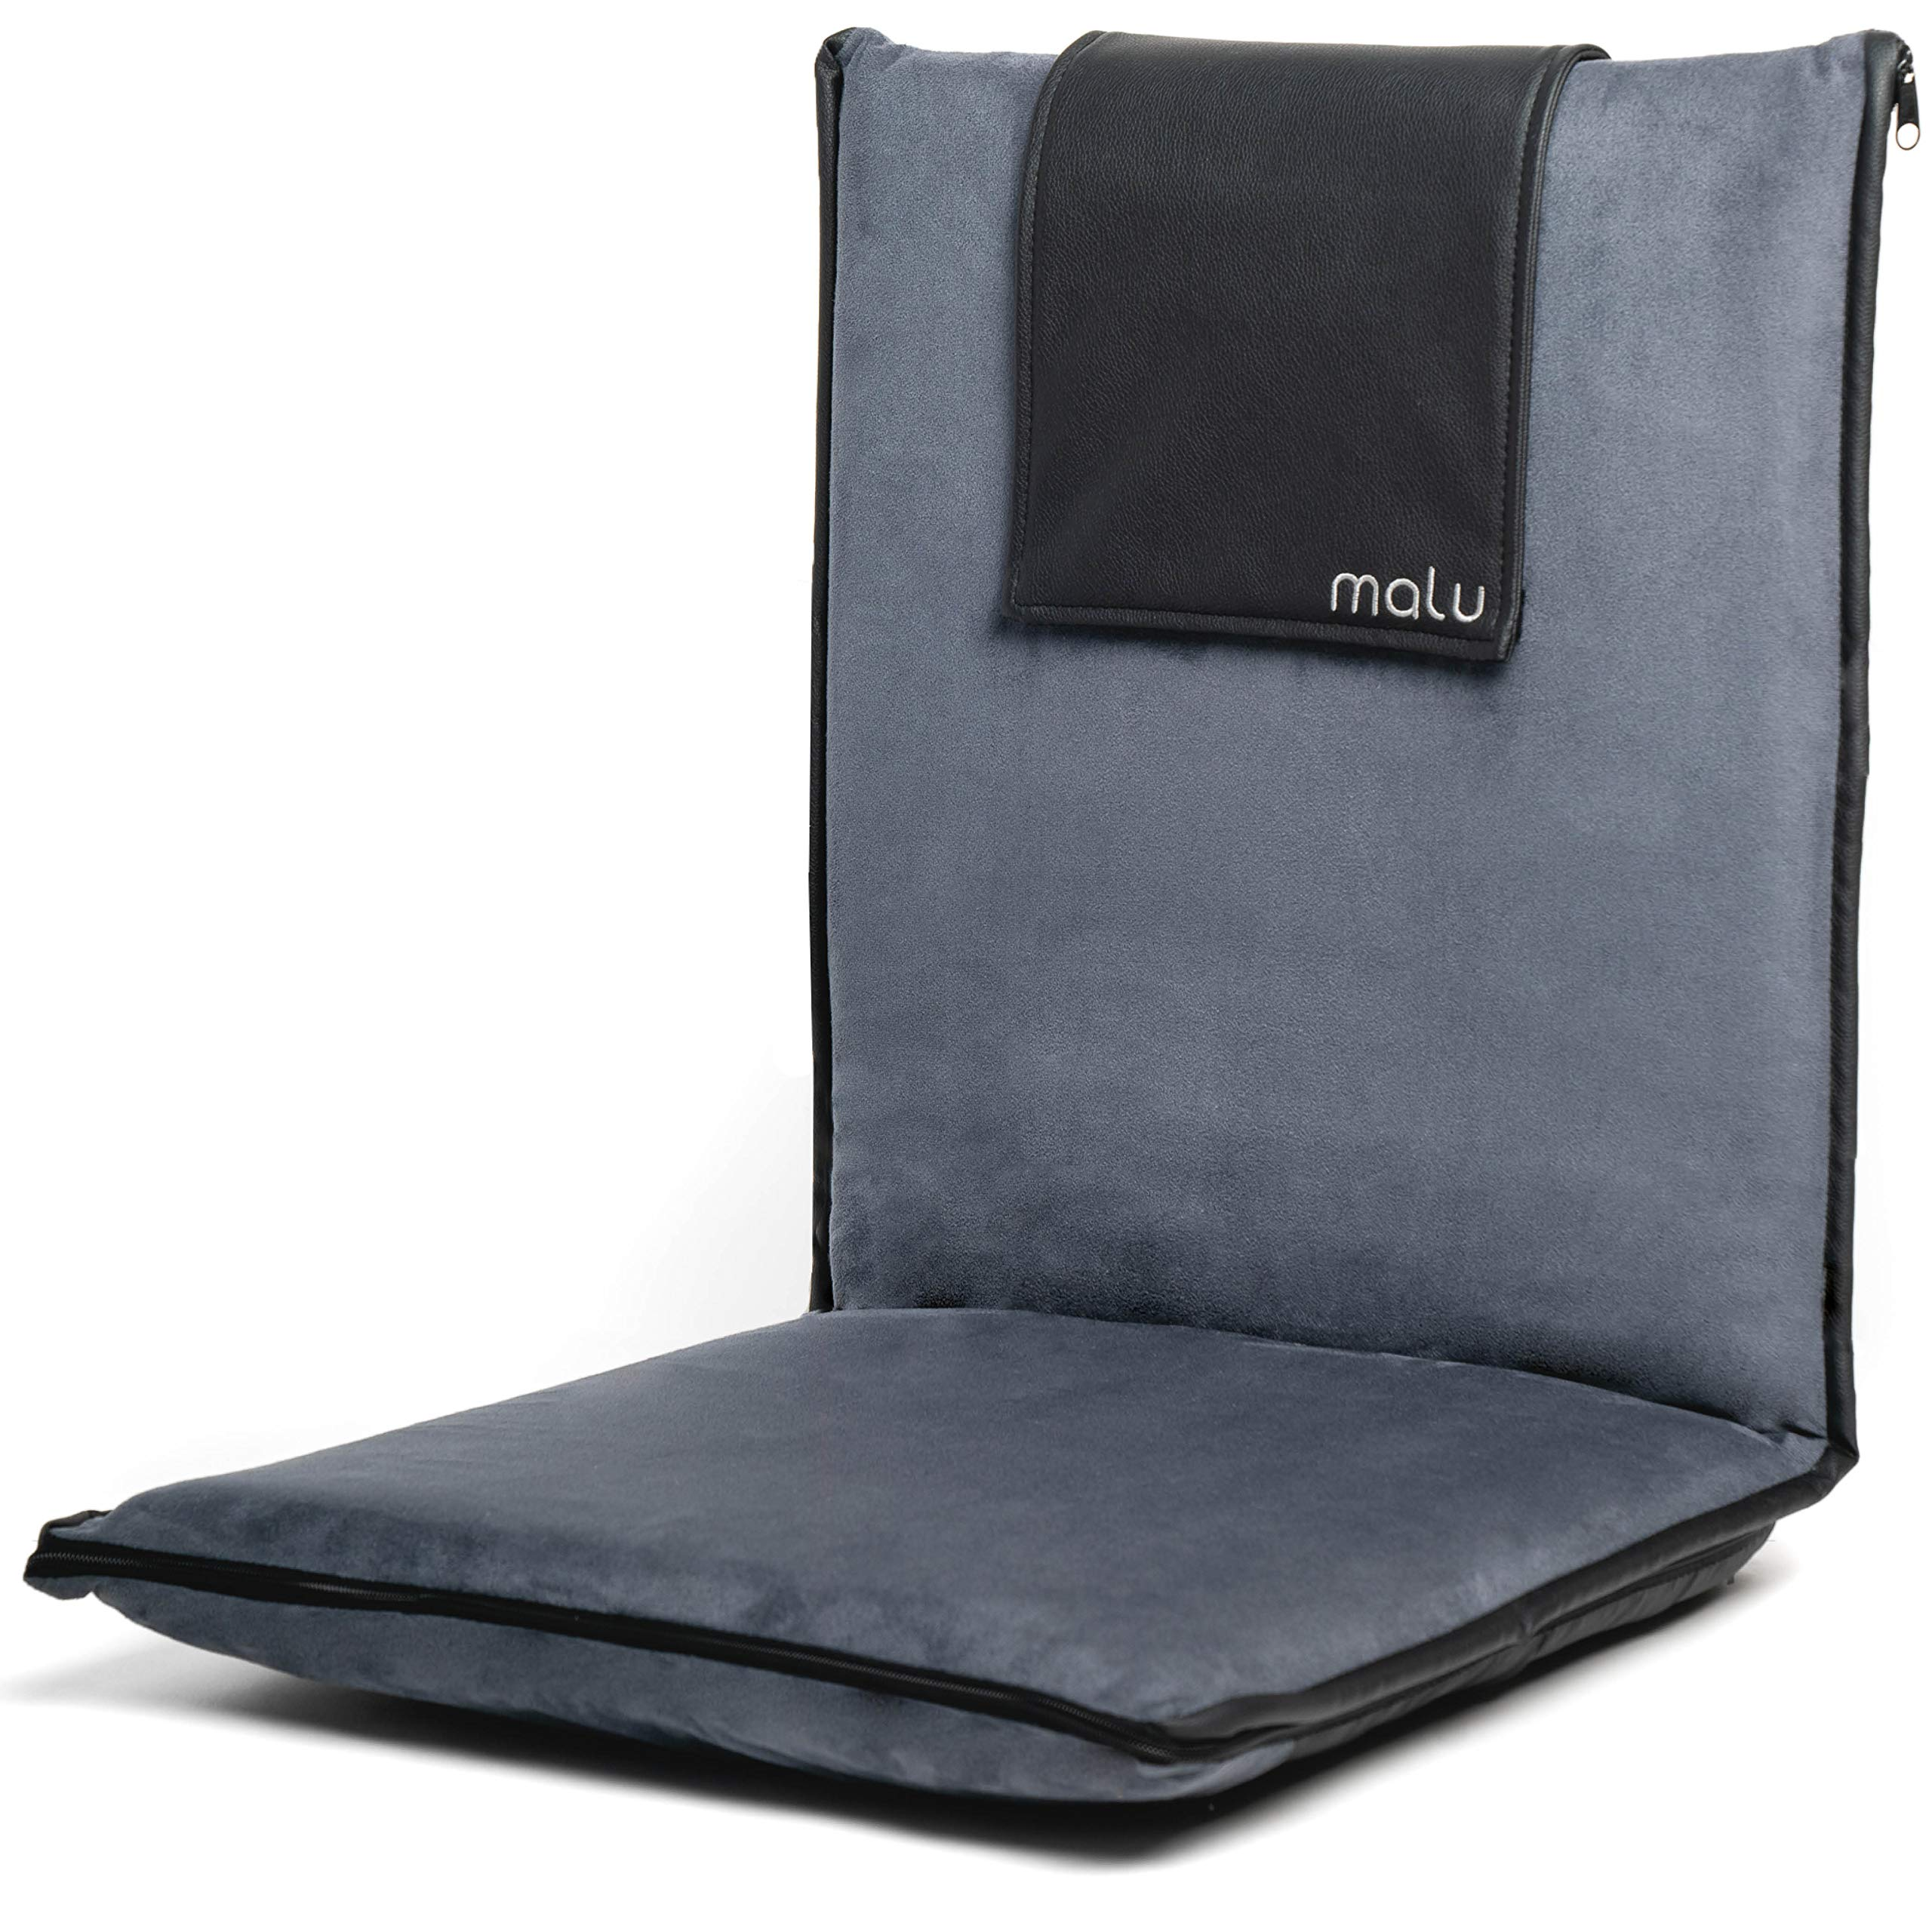 malu Luxury Padded Floor Chair with Back Support - Meditation Cushion w/Adjustable Fully Folding Backrest and Removable Gray Washable Cover - Portable - Easy Wash Nylon Bottom - Vegan Leather Accents by malu